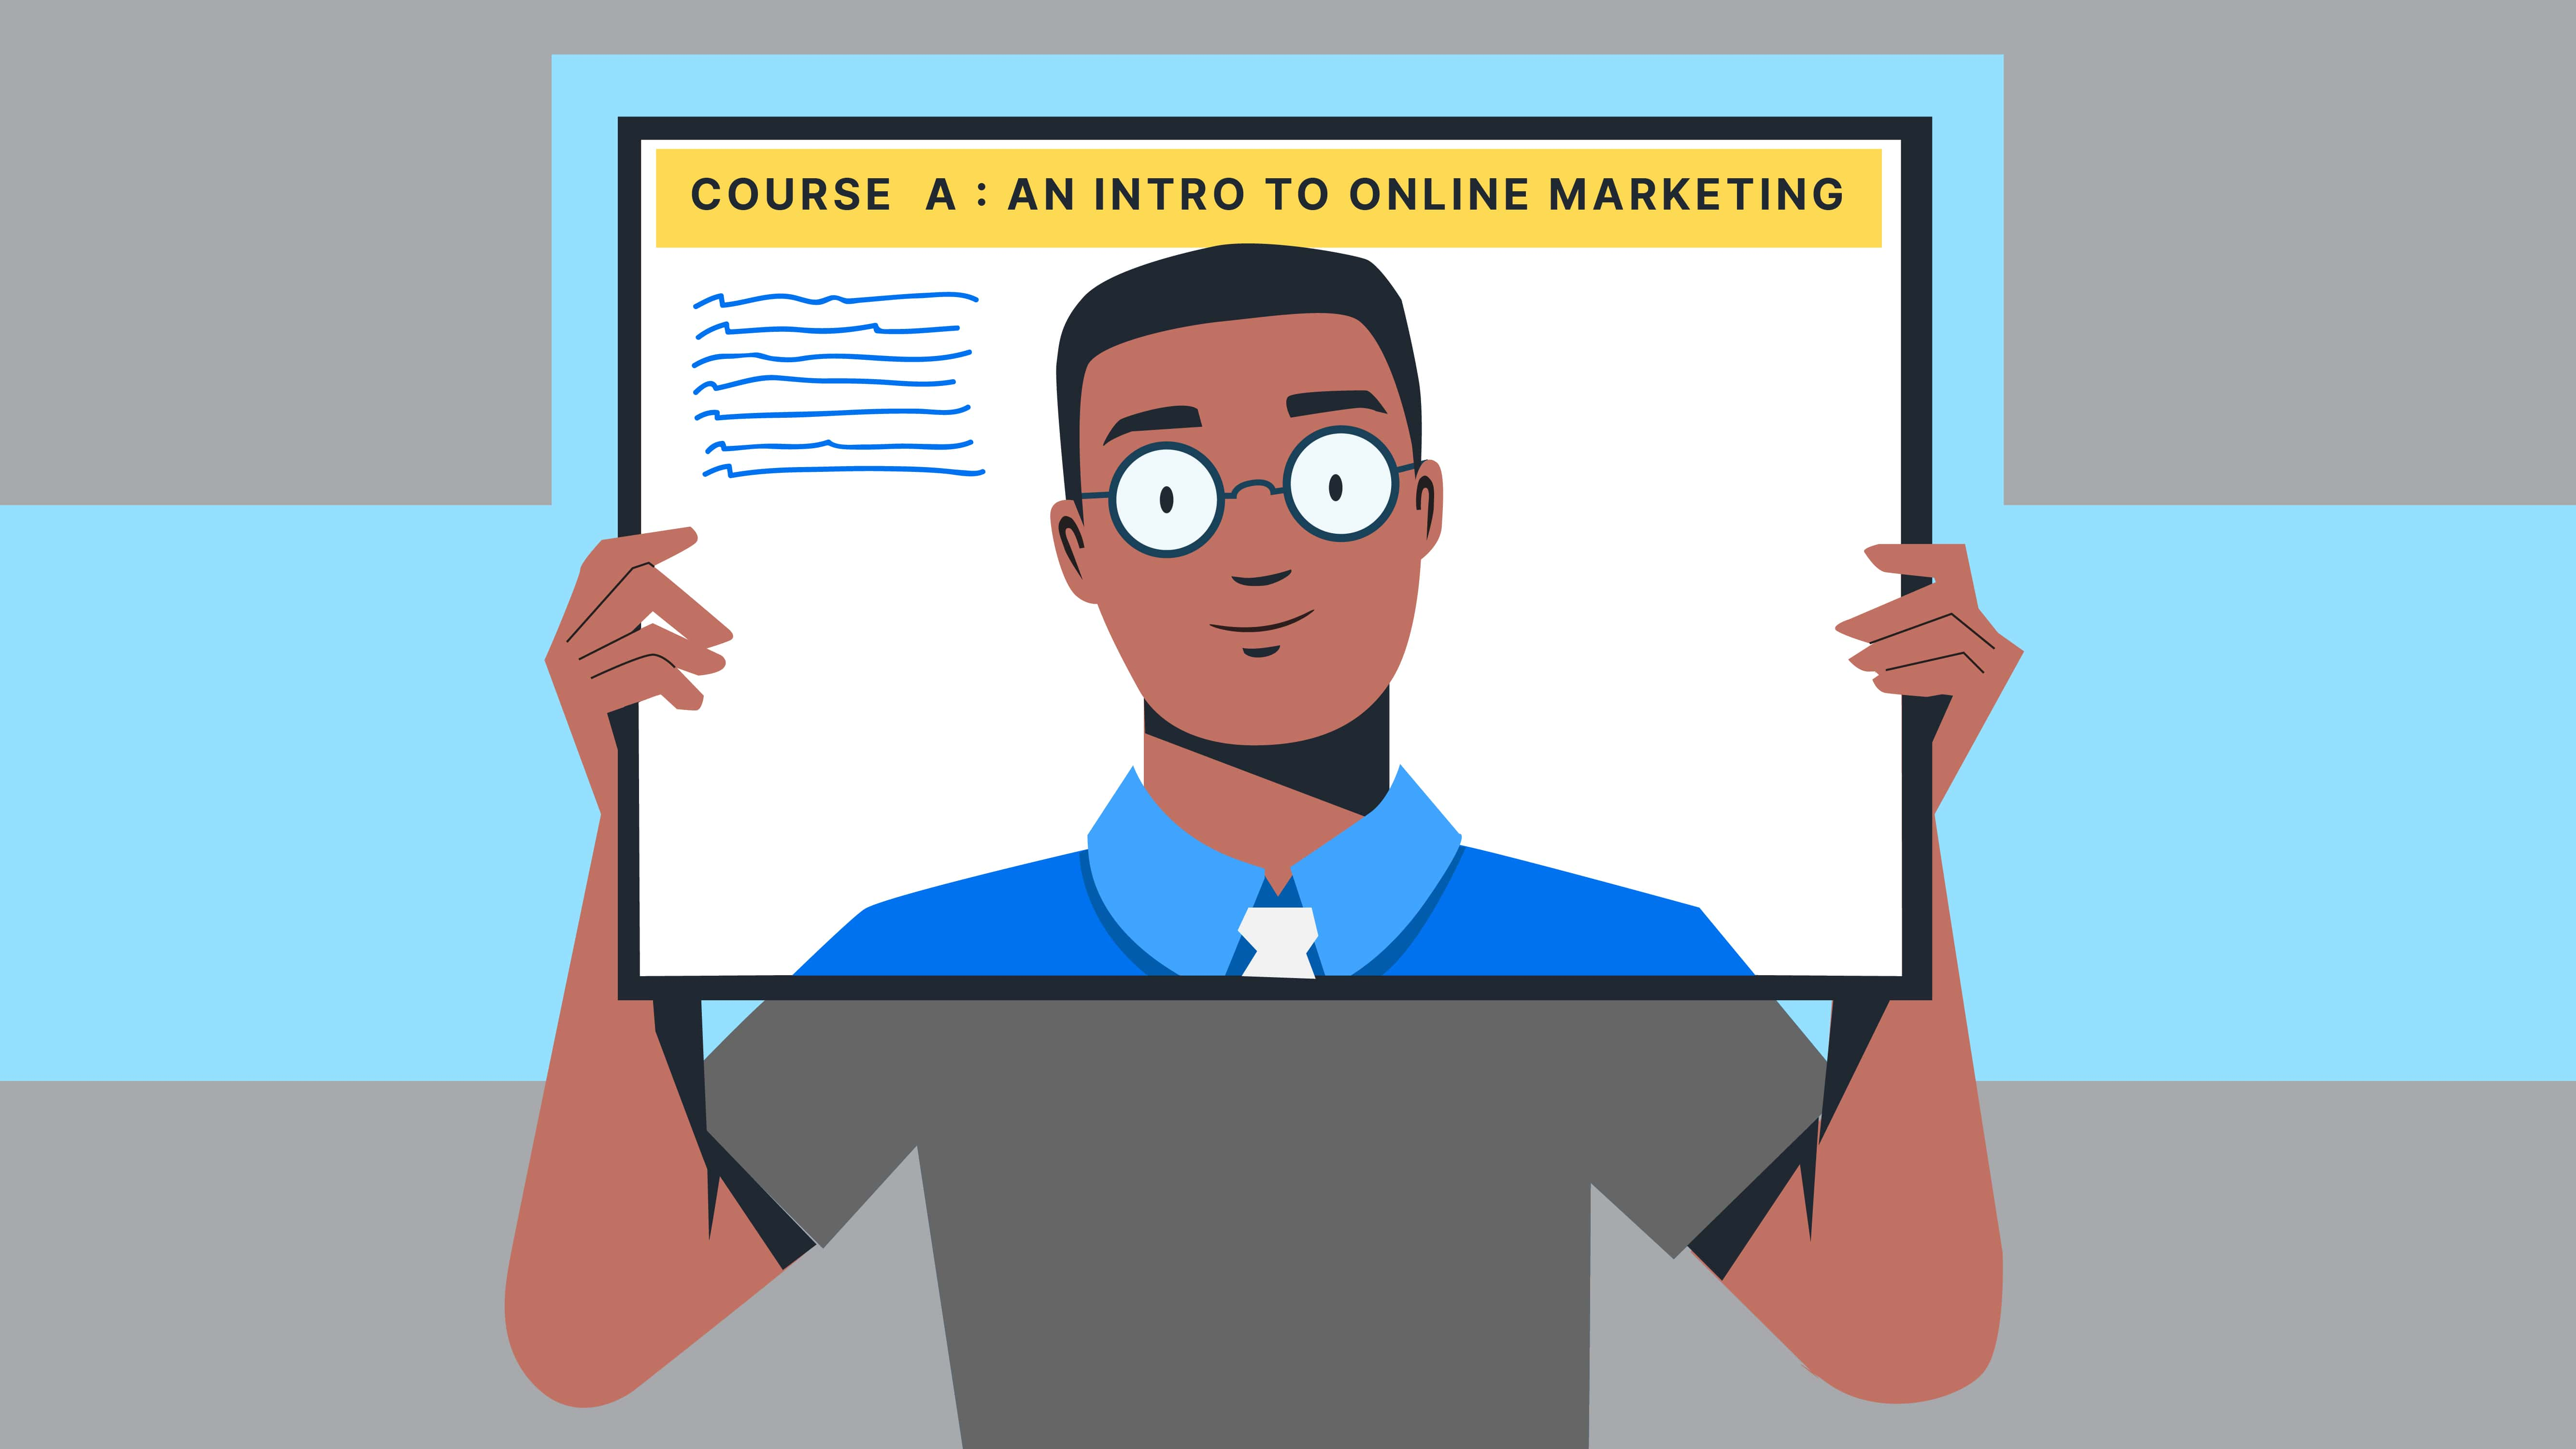 illustration of a man teaching a course called Intro to Online Marketing